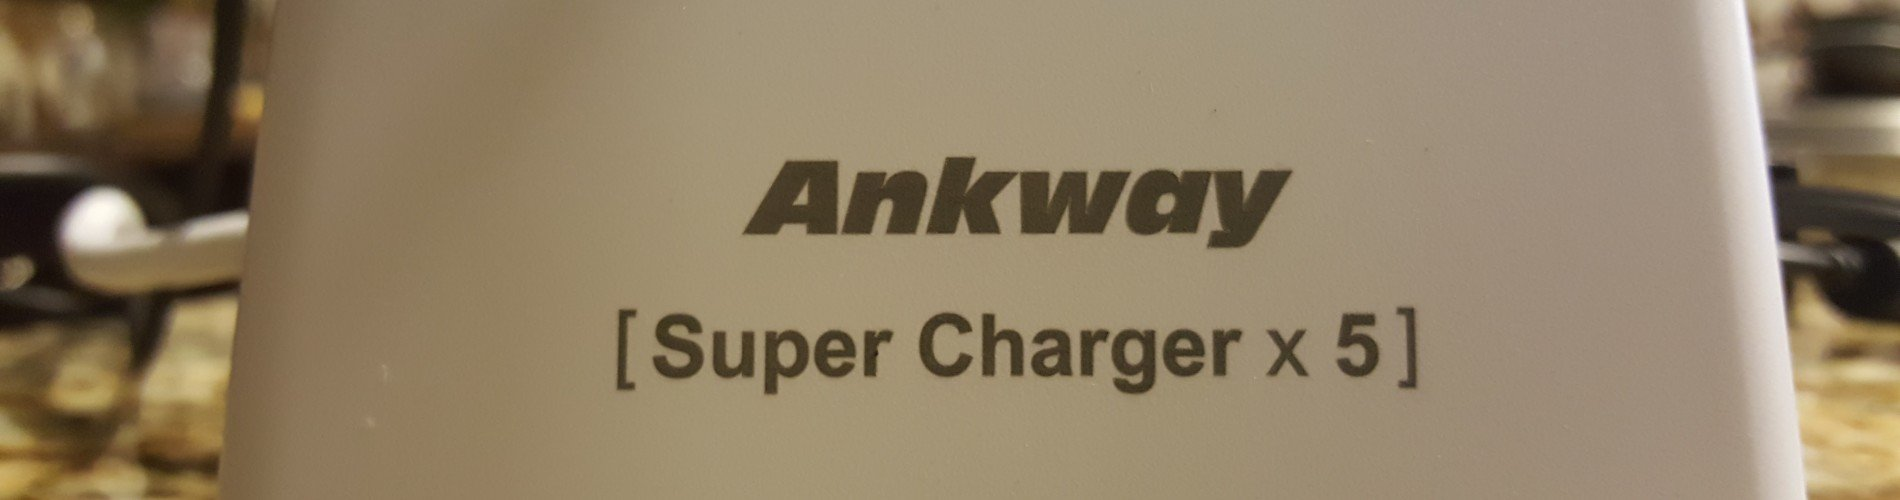 Ankway Home & Office Super Charger (review)